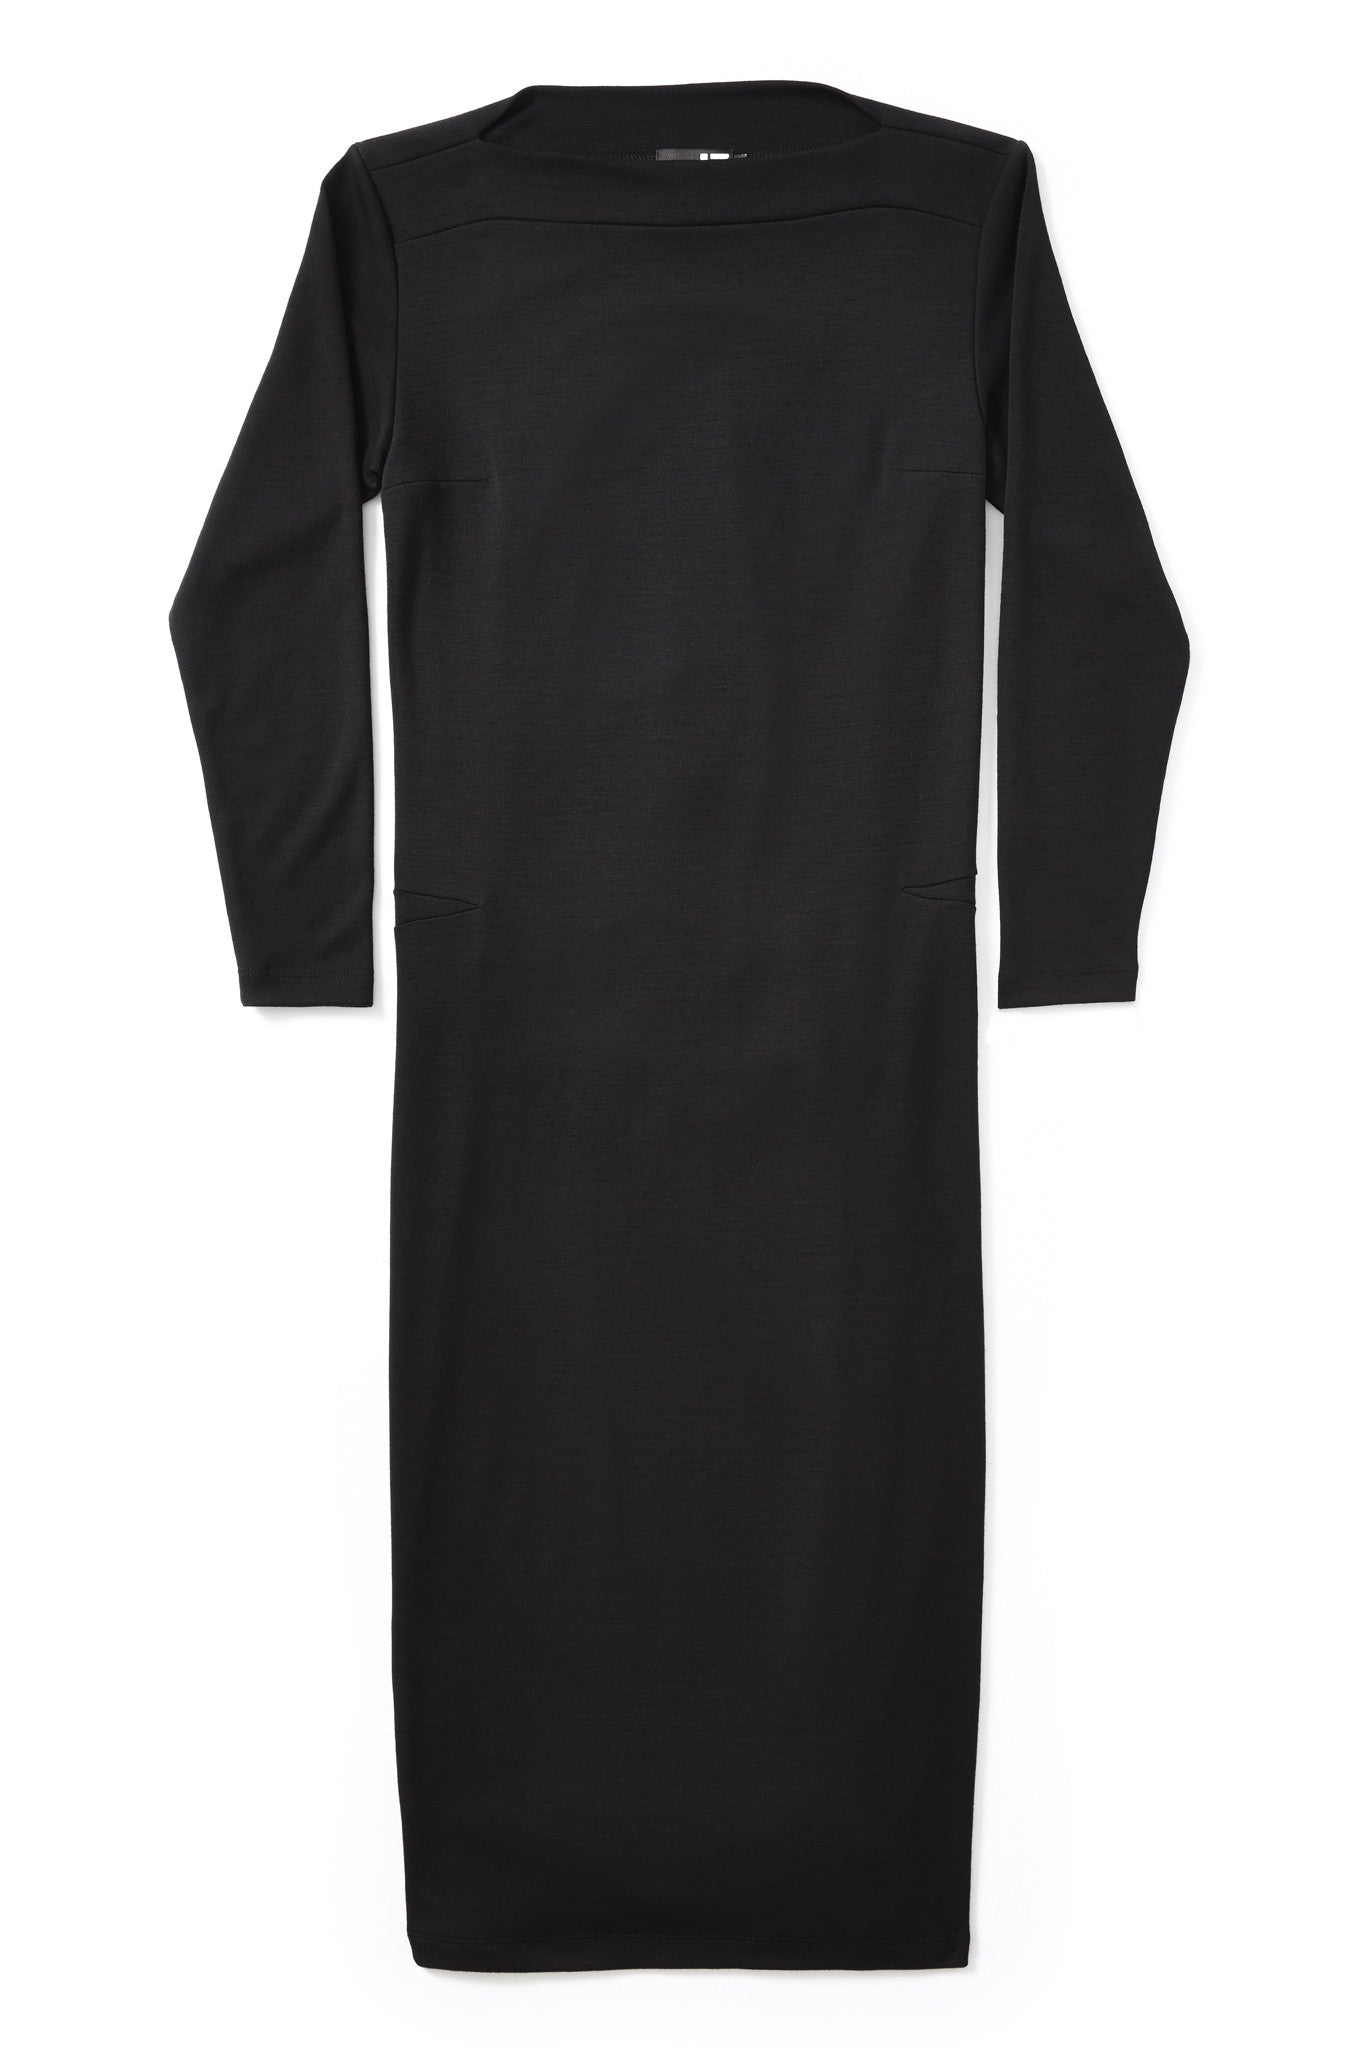 Boatneck Dress - A modern take on adaptive clothing for women.